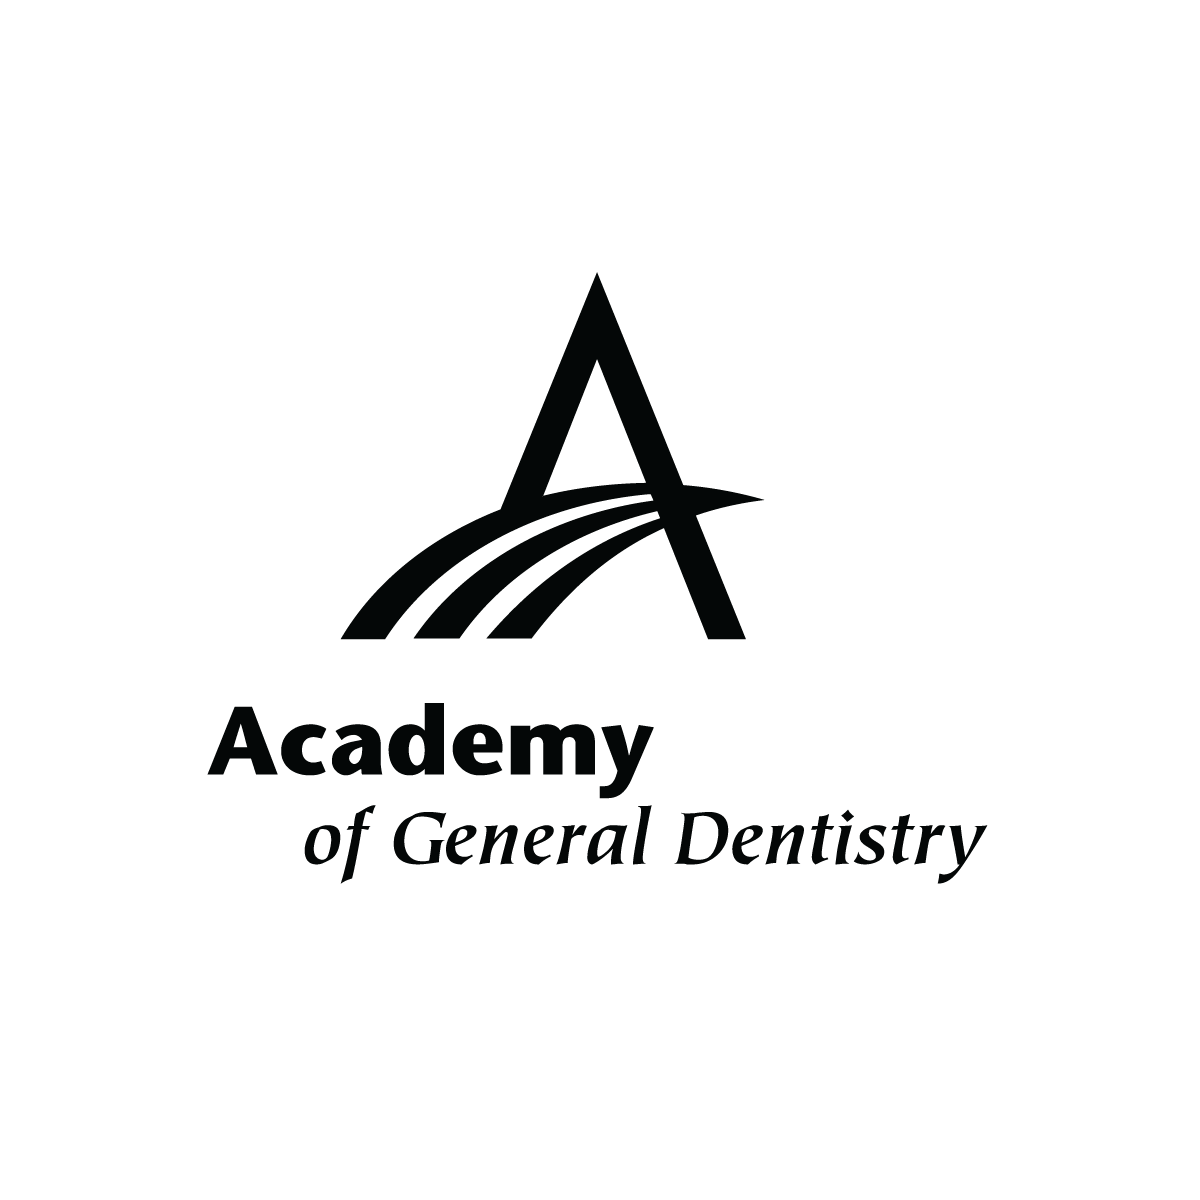 Academy_of_General_Dentistry-blk-01.png